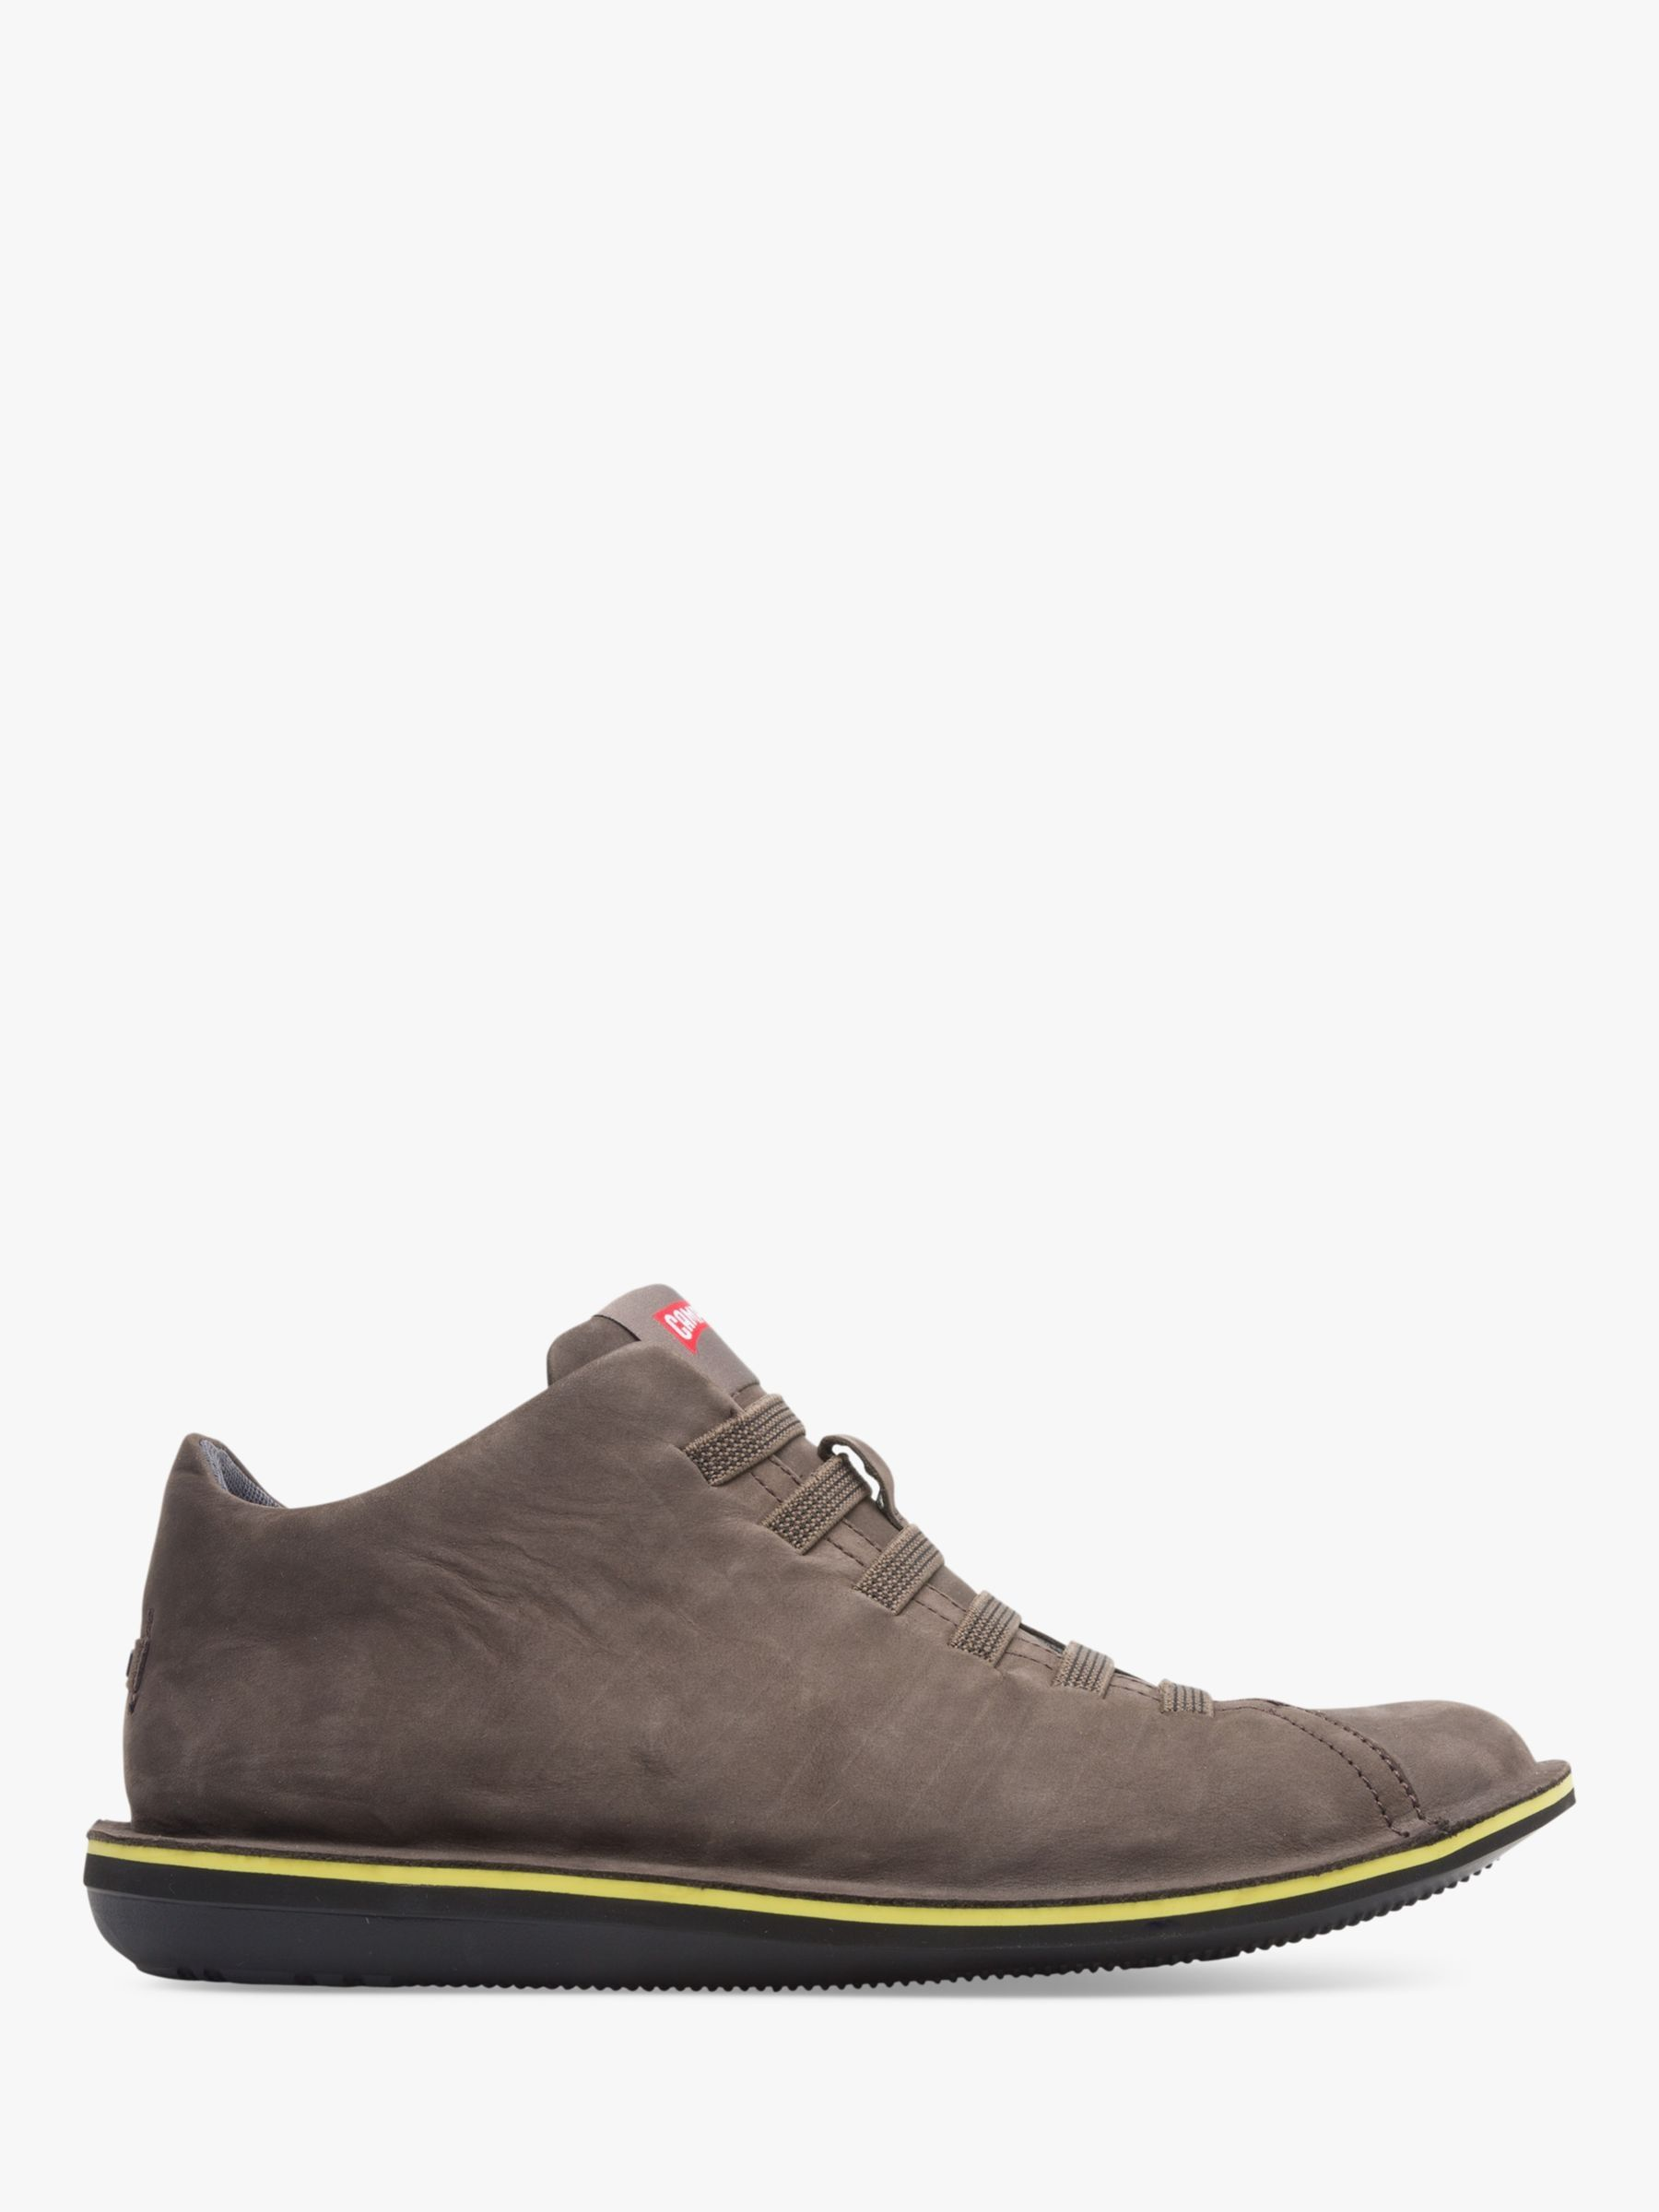 See All The Latest Sale Items Camper Men's shoes Trainers